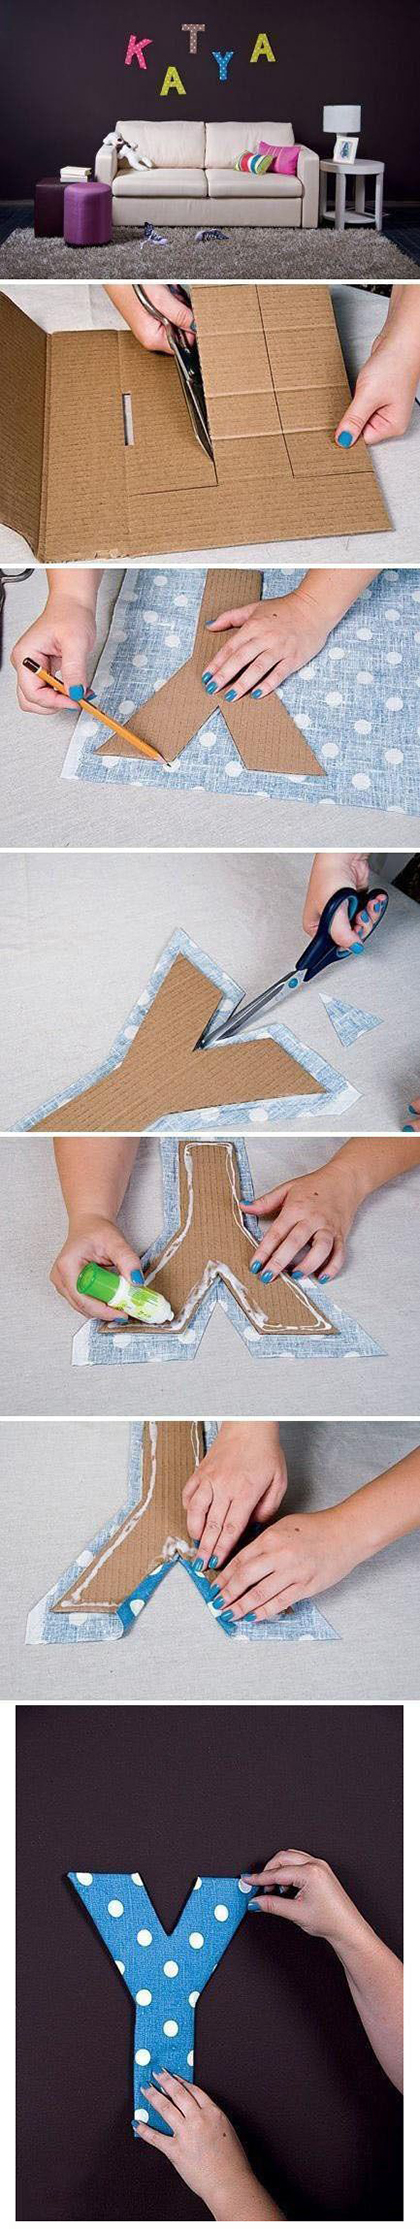 Fabric and Cardboard Wall Letters DIY11